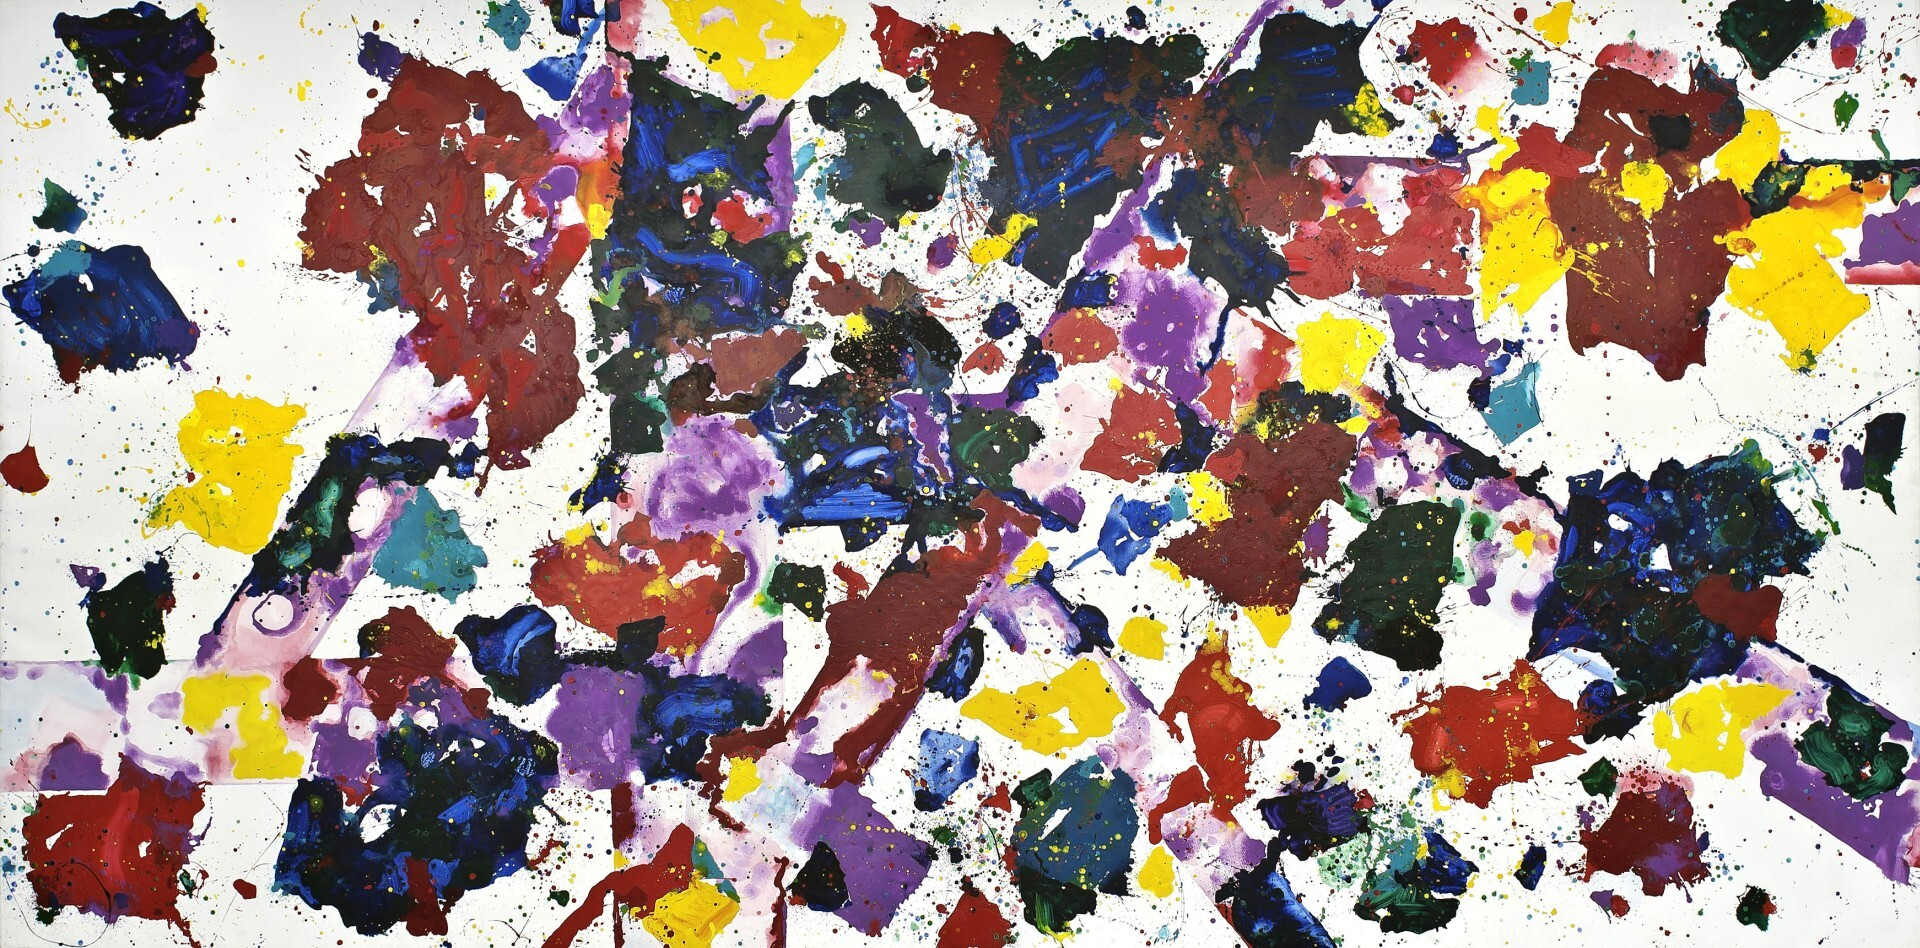 Sam Francis - Untitled 1/3